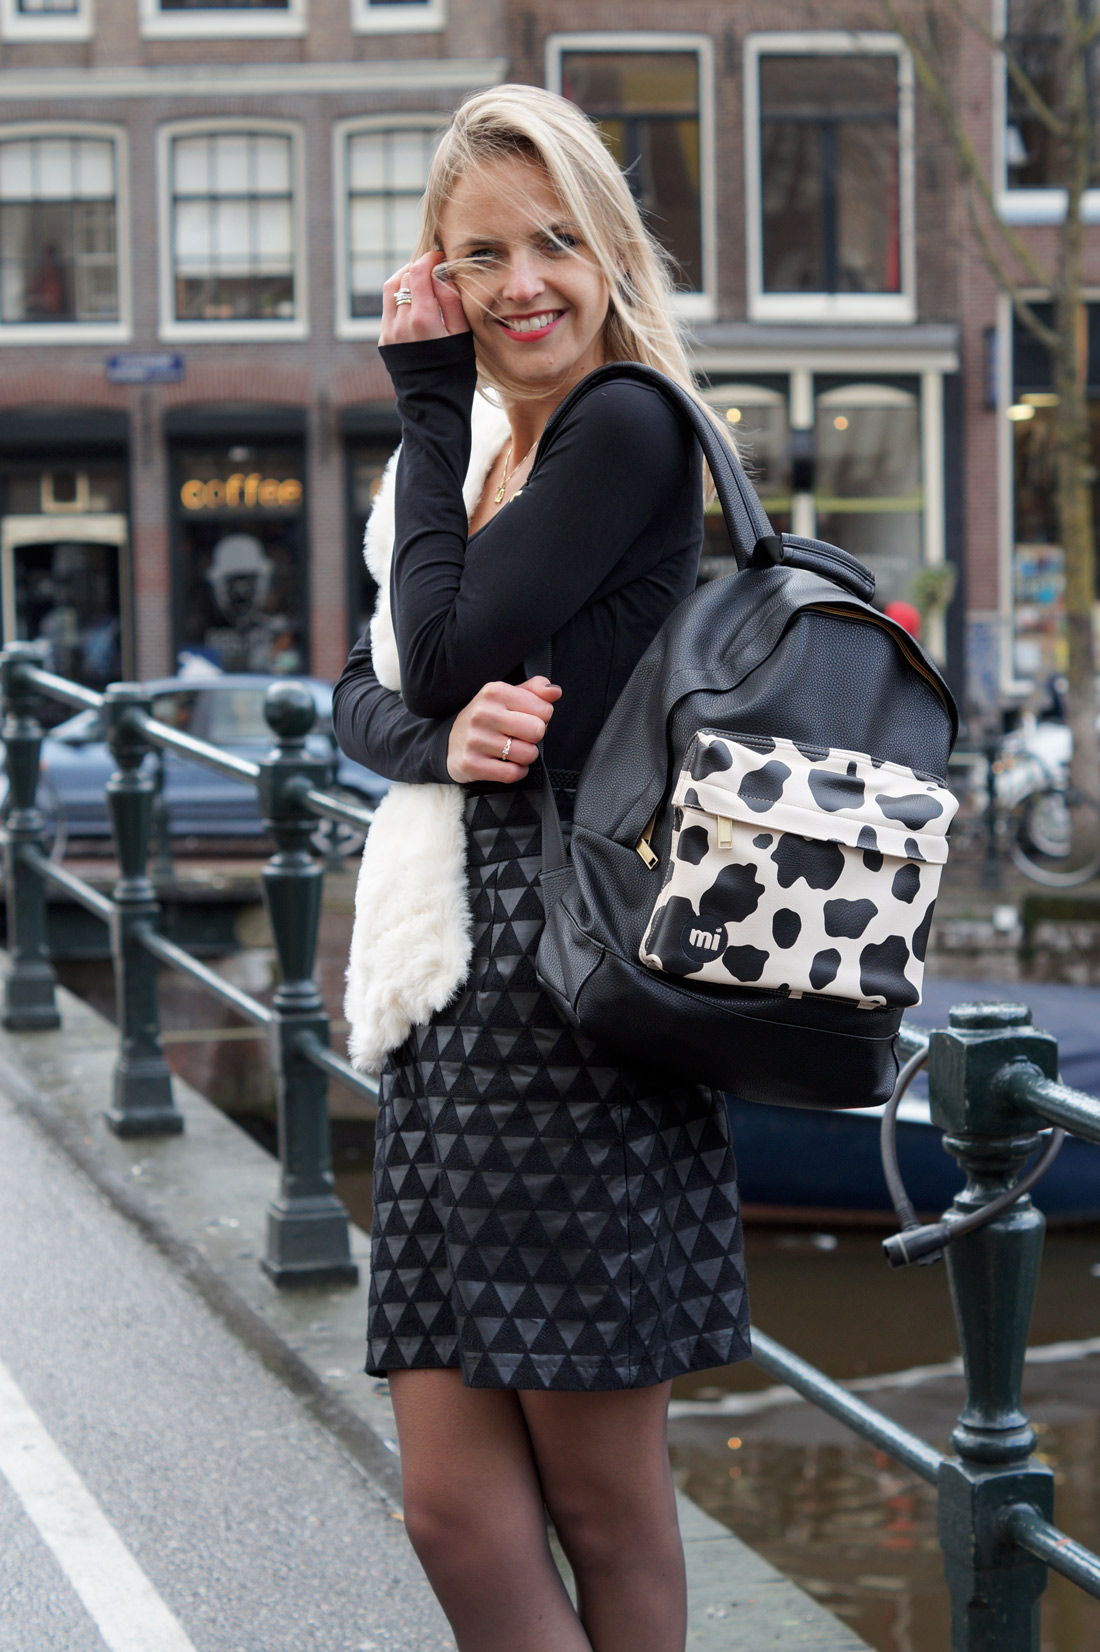 Bag-at-You---Fashion-blog---Mi-Pac-label-bags---Dutch-blogger-Amsterdam